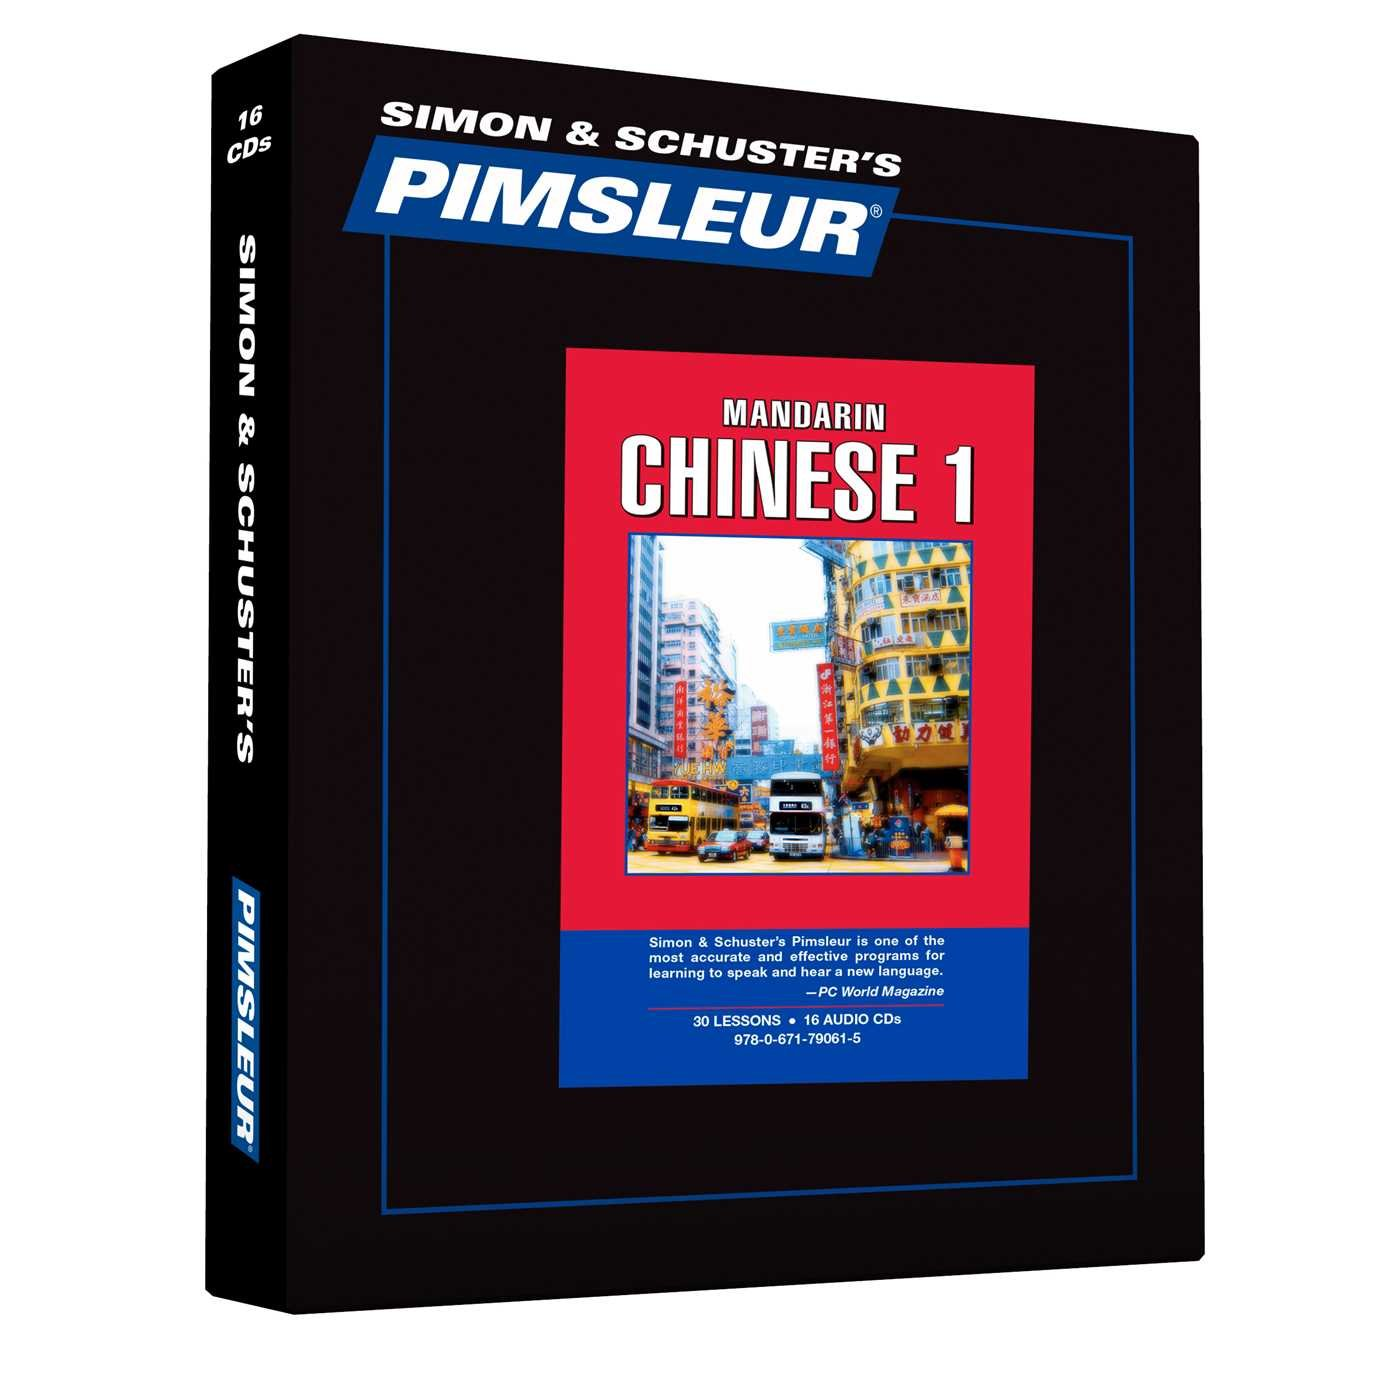 Chinese (Mandarin) I by Simon & Schuster Audio